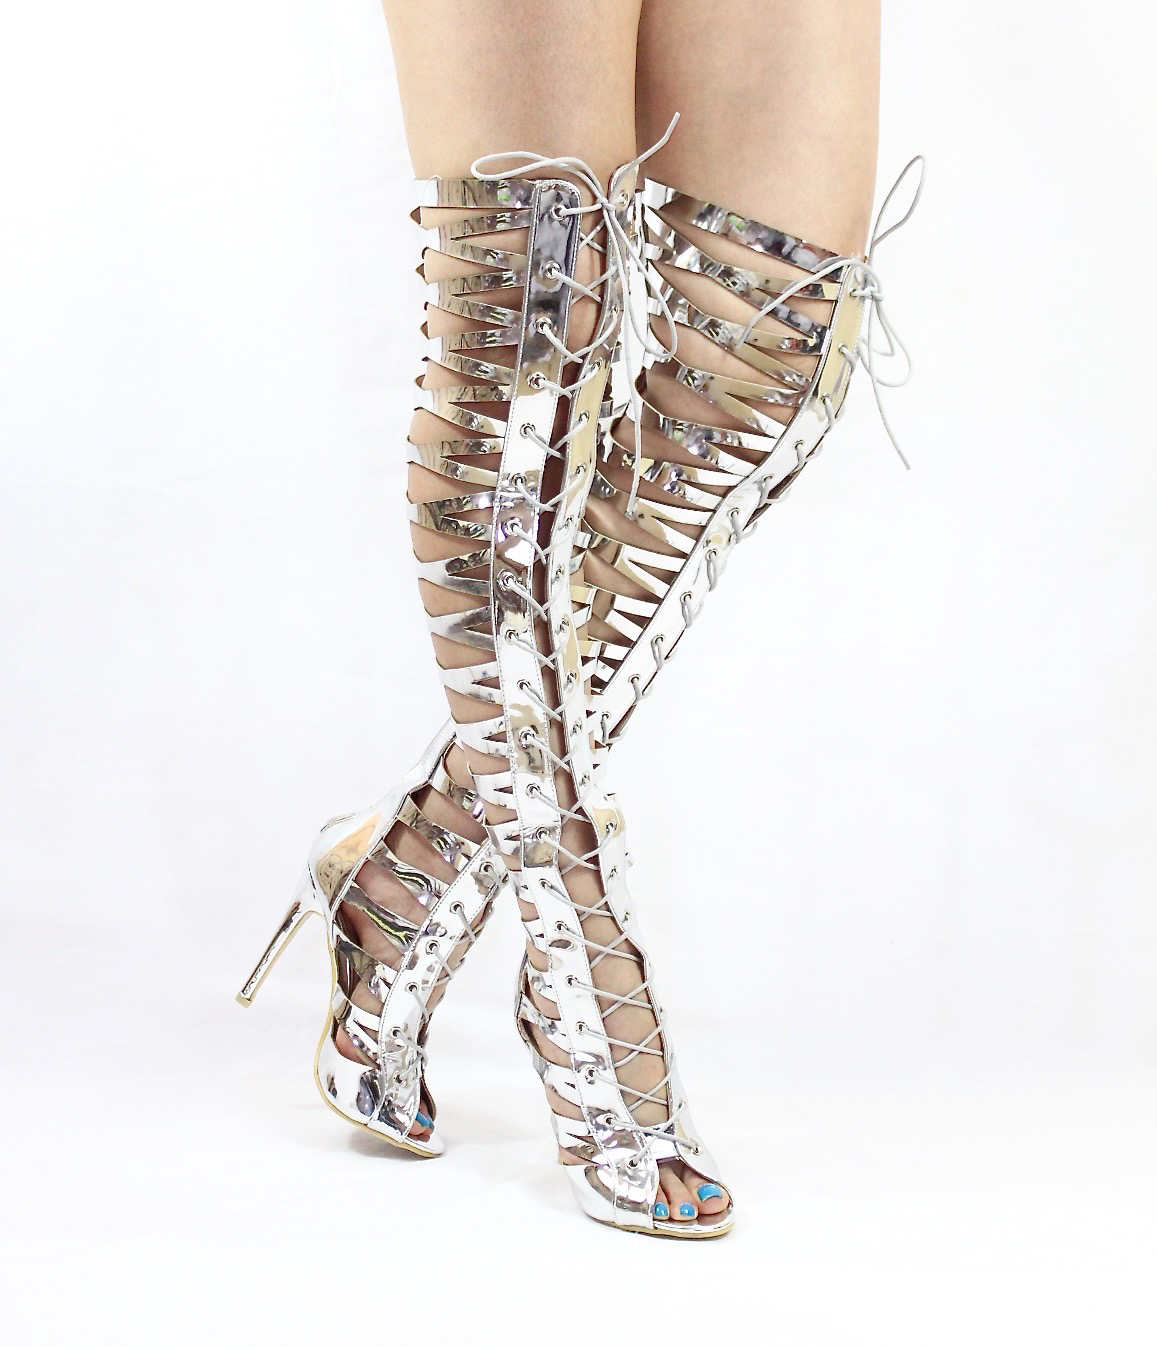 Open Toe Thigh High Lace Up Silver Gladiator Sandals Boots-4693